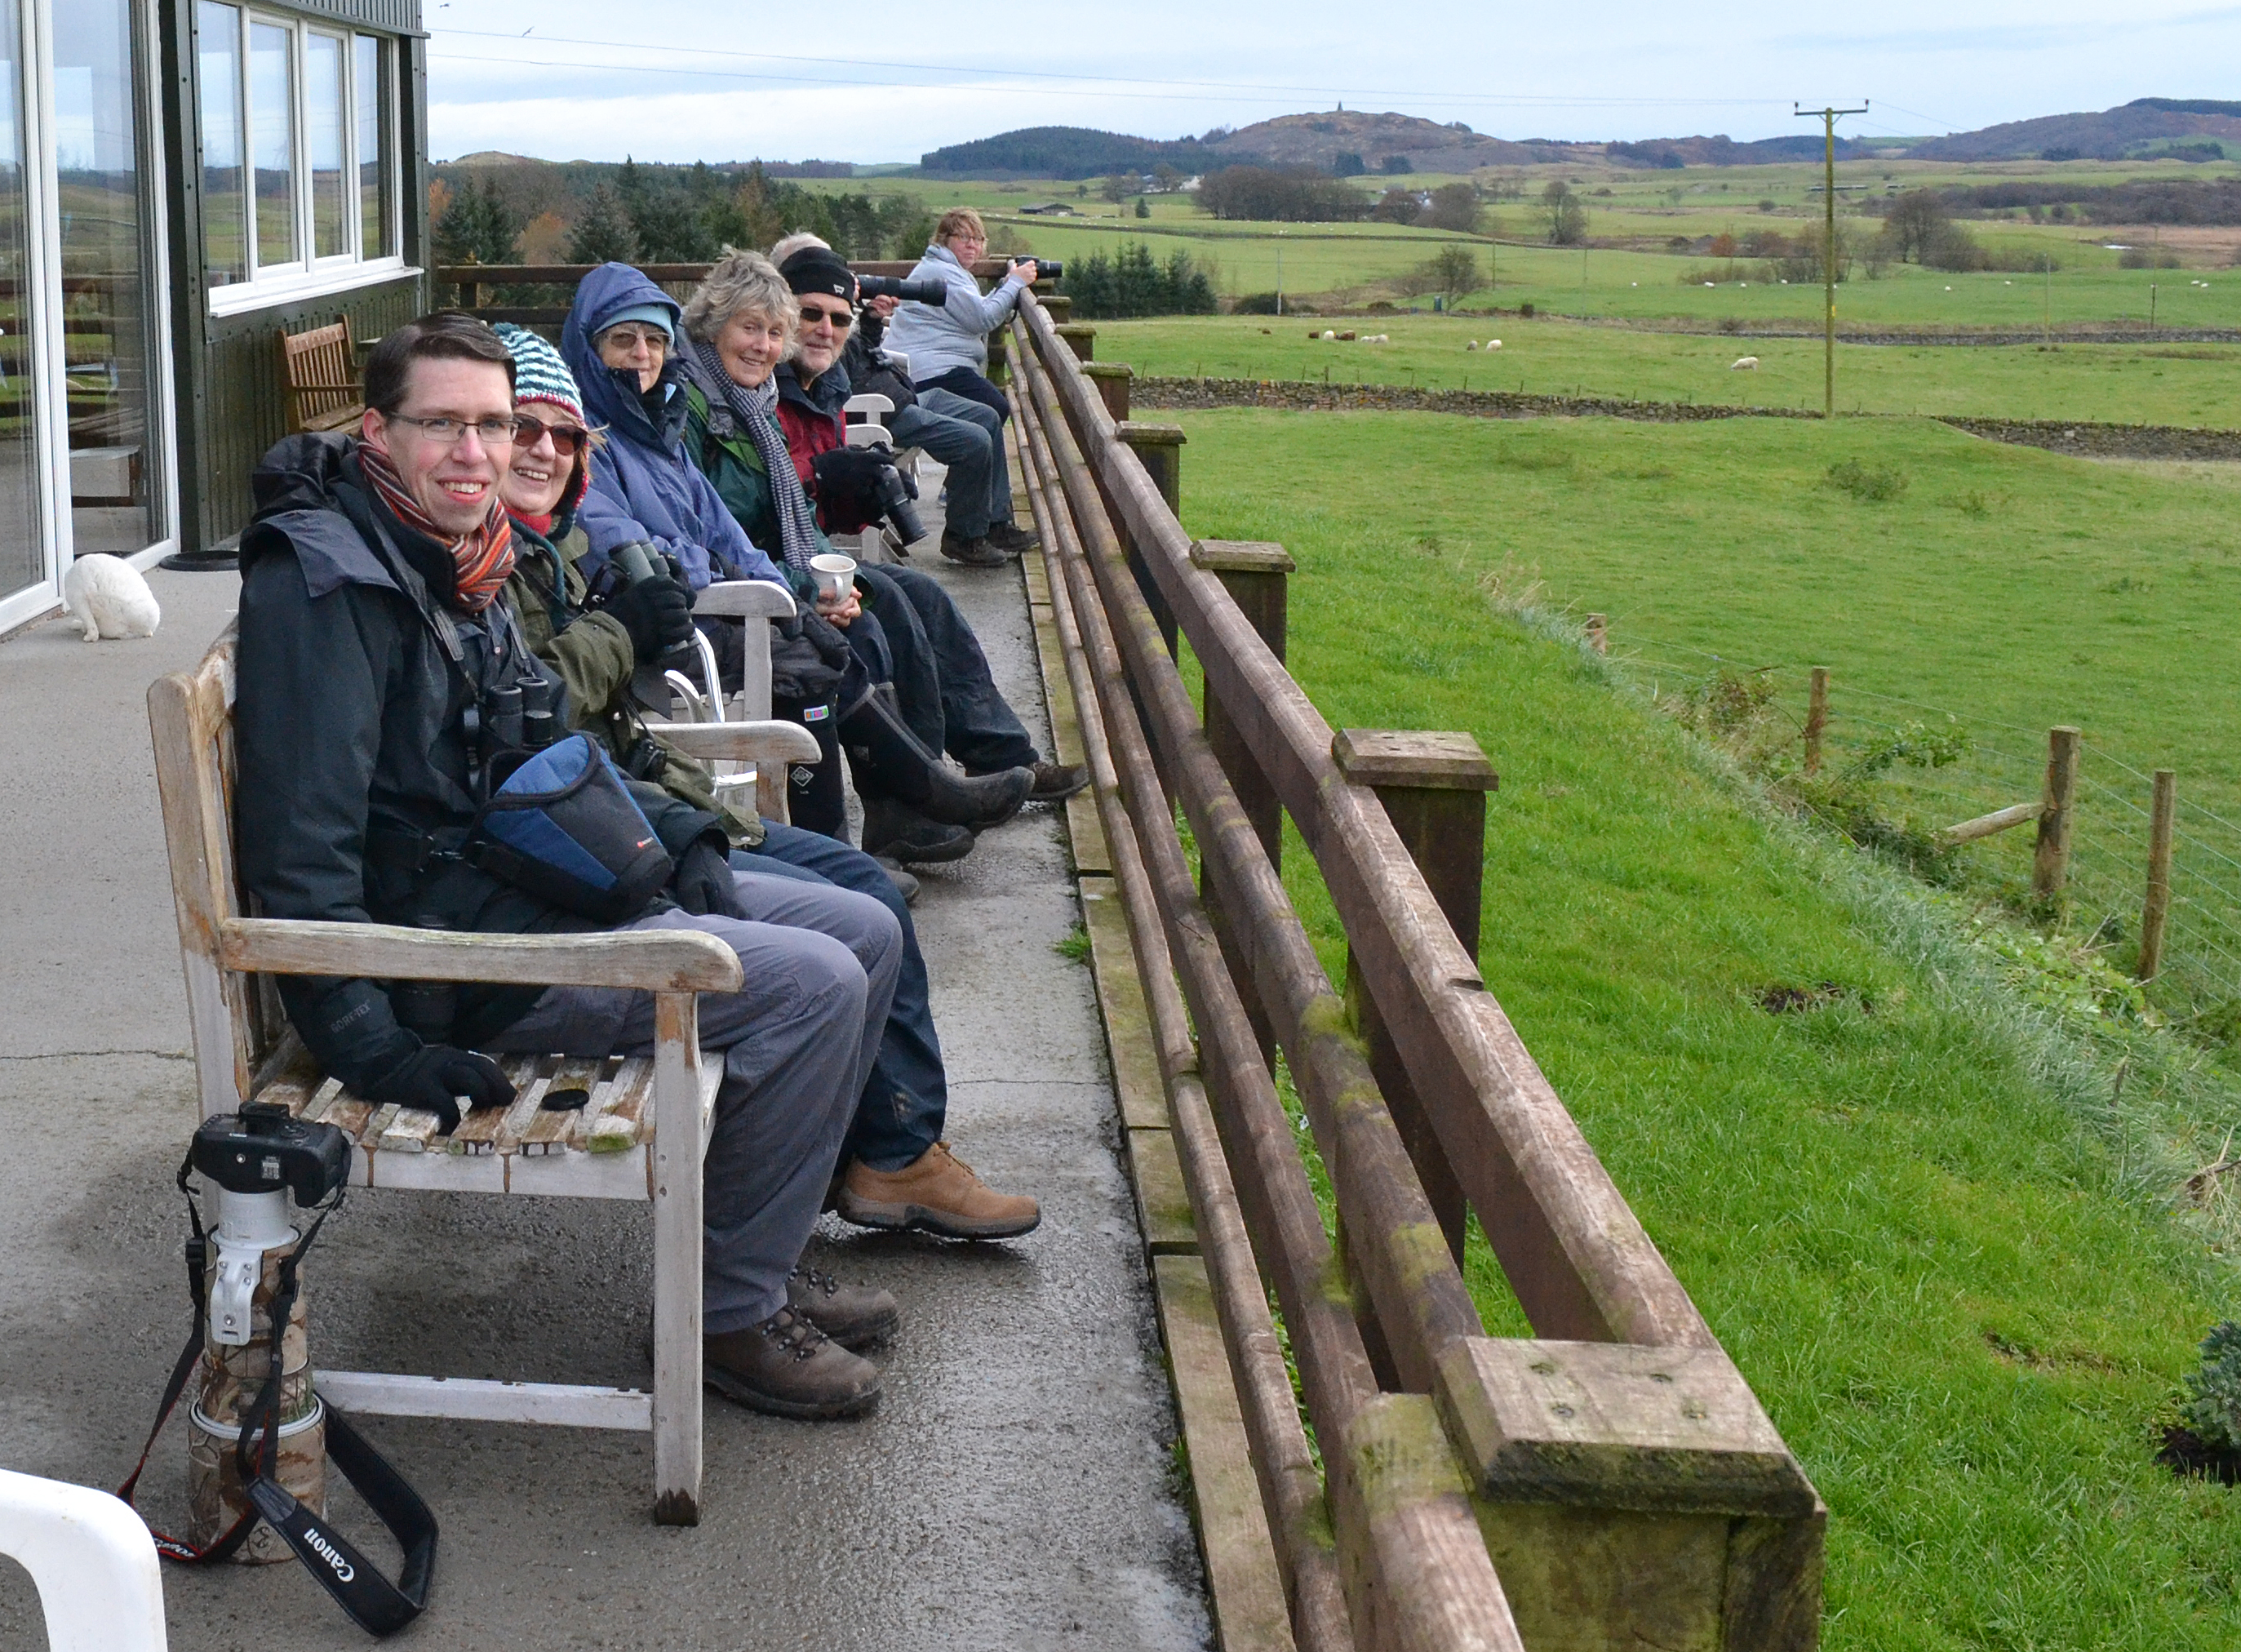 Members at Red Kite Feeding Station